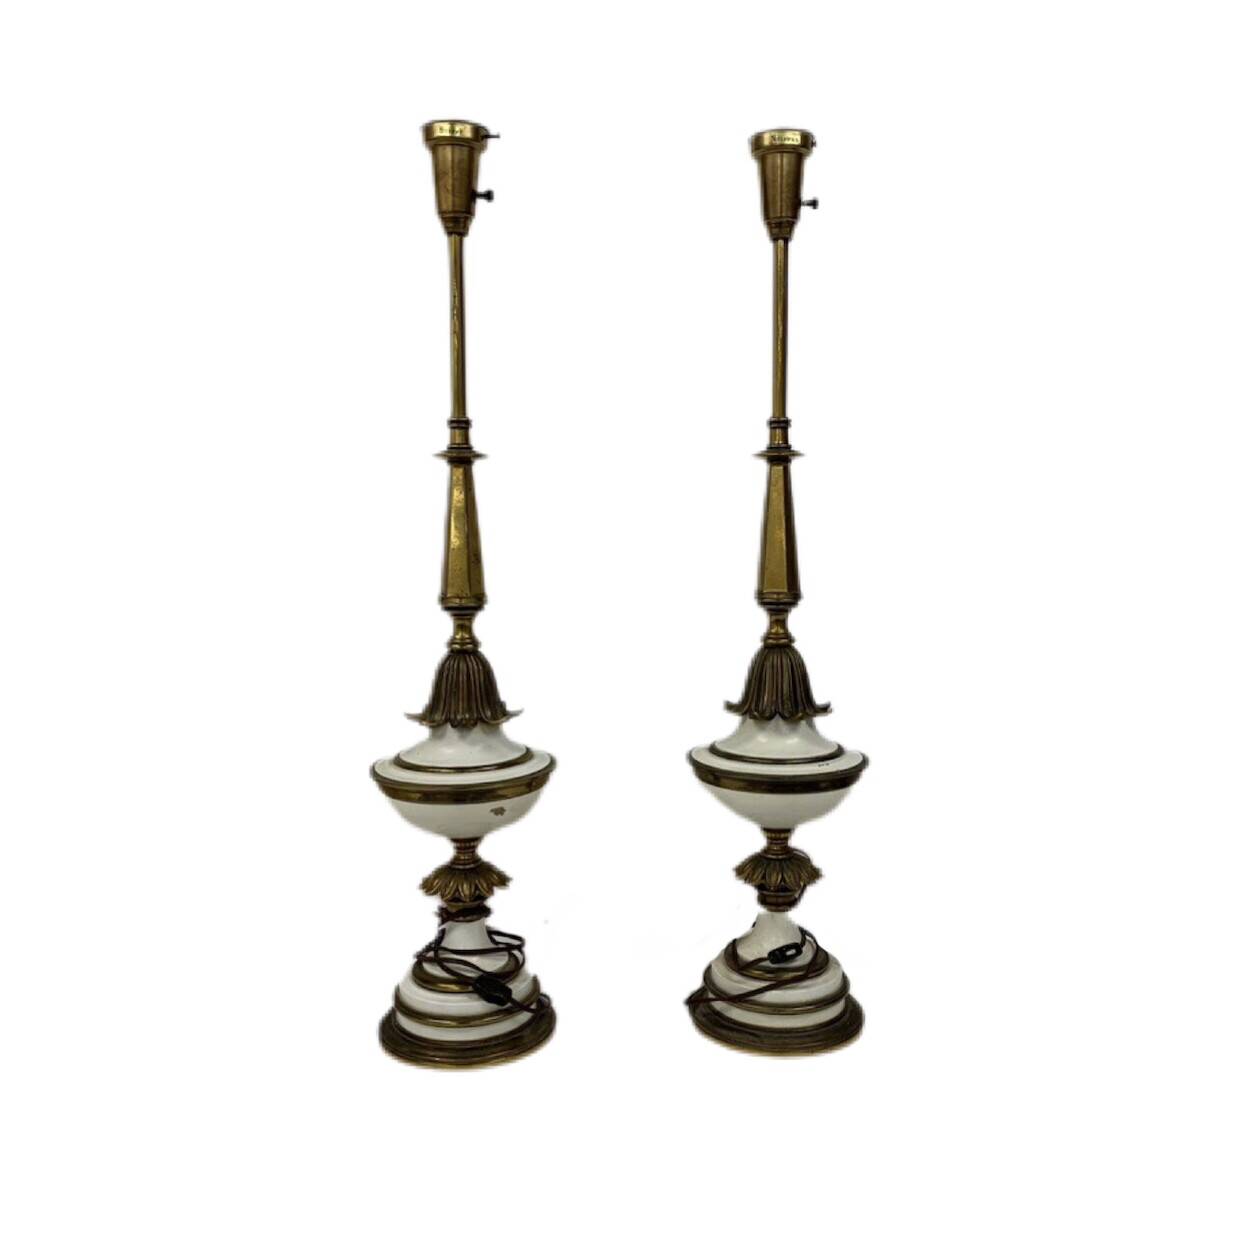 Pair Of Stiffel Table Lamps